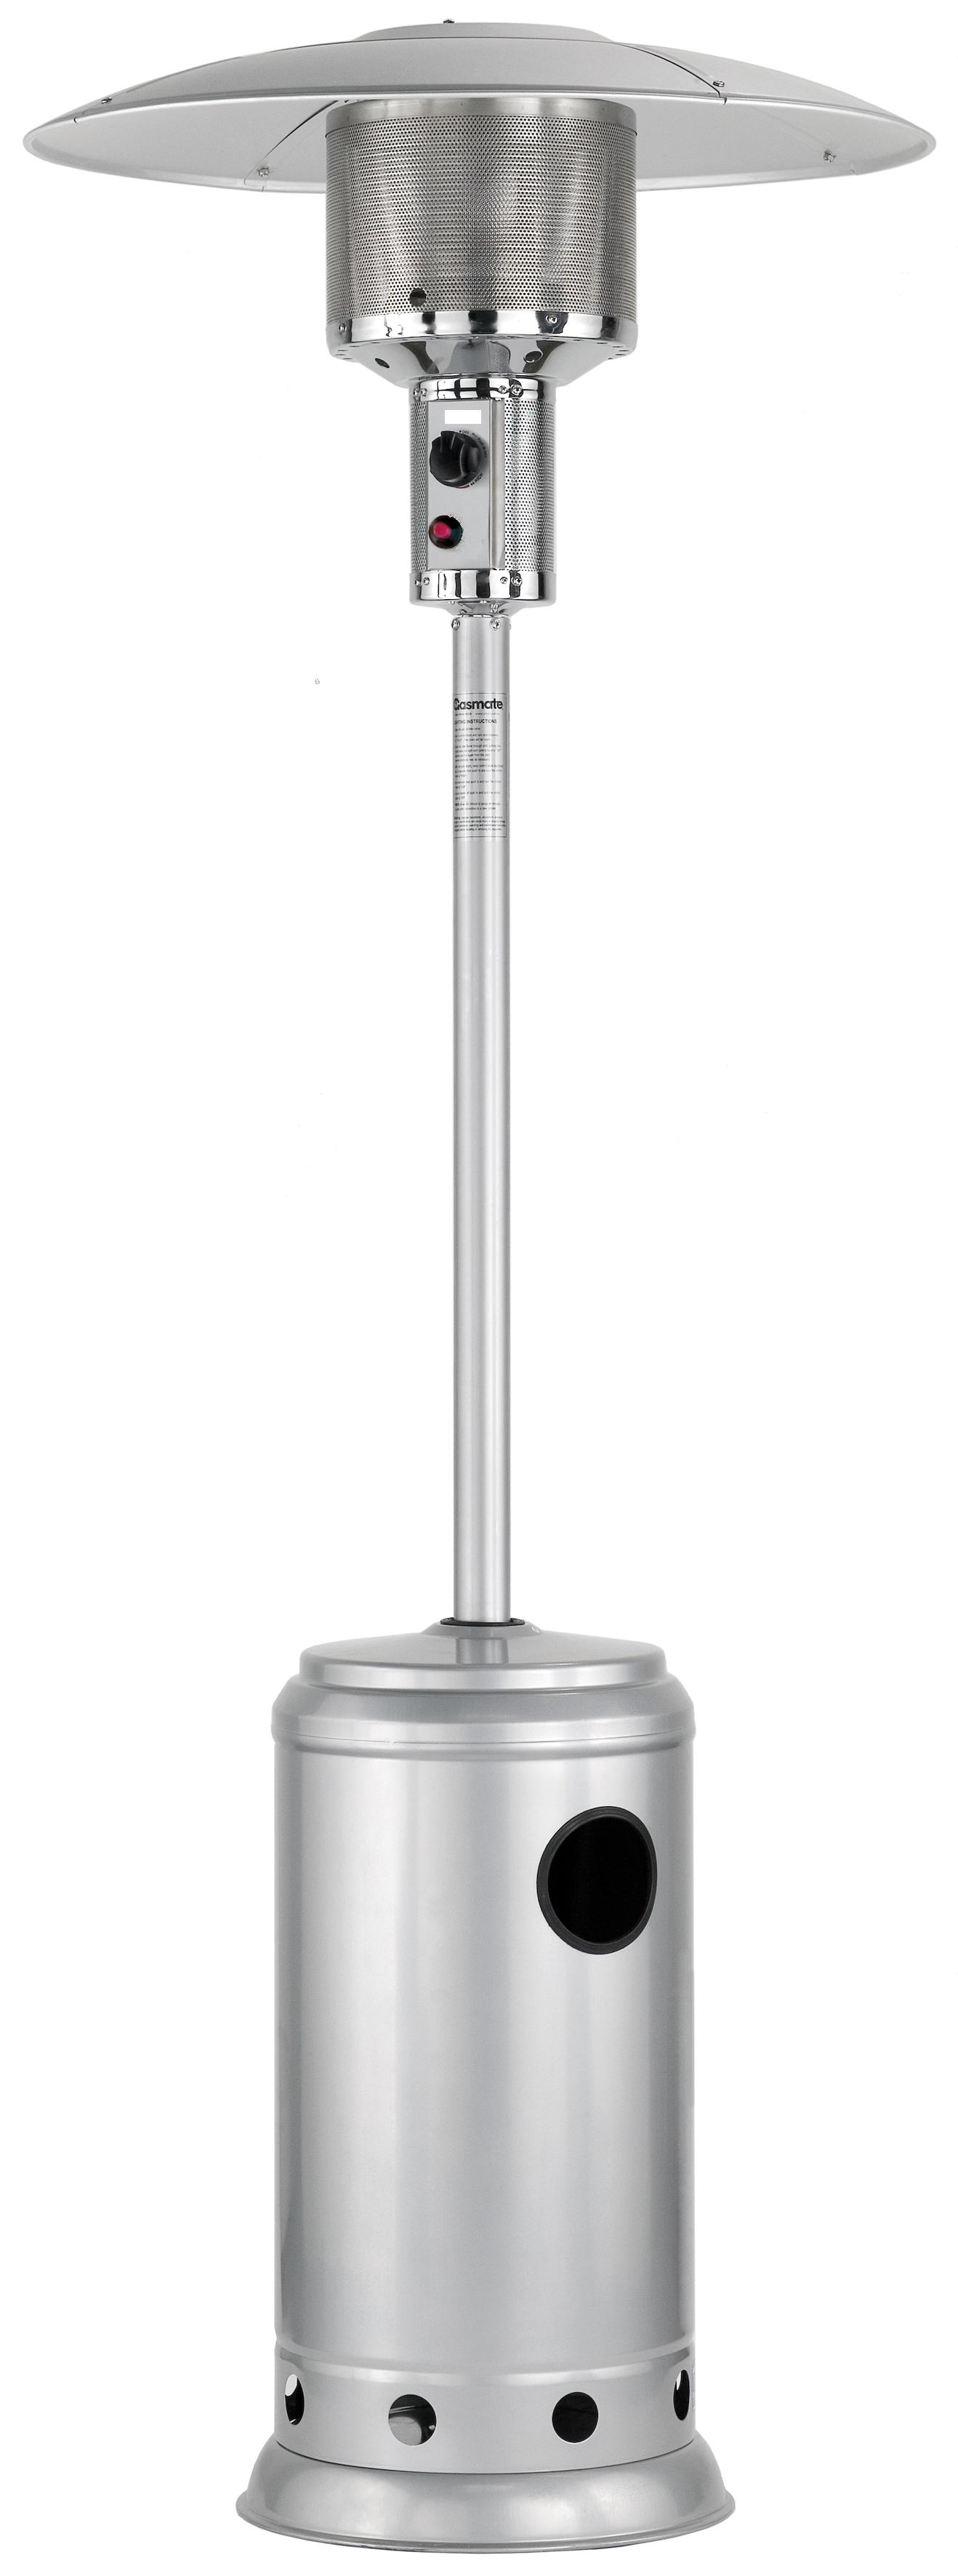 Patio Heater Hire Home Design Ideas and